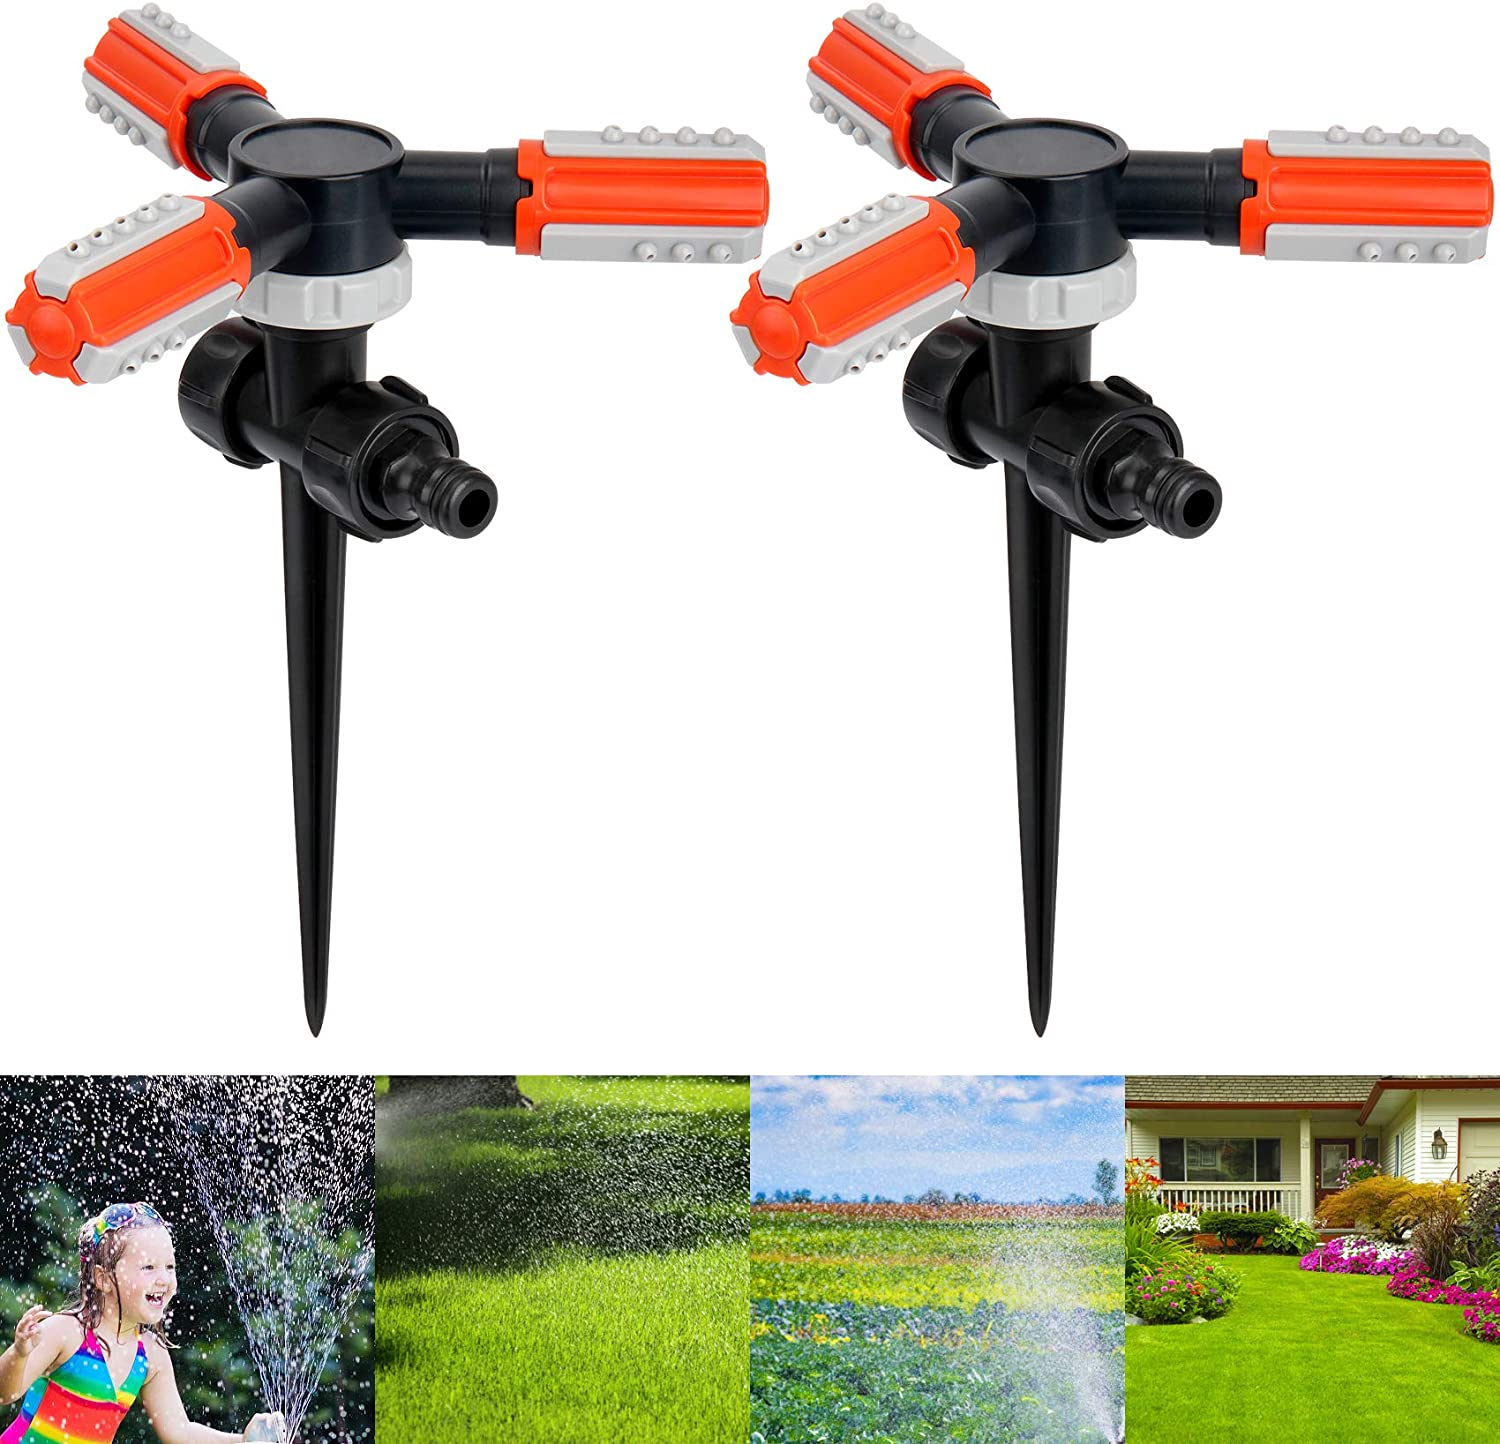 Lawn All stores are sold Sprinkler 360 Degree Rotating outlet Hose with Garden G